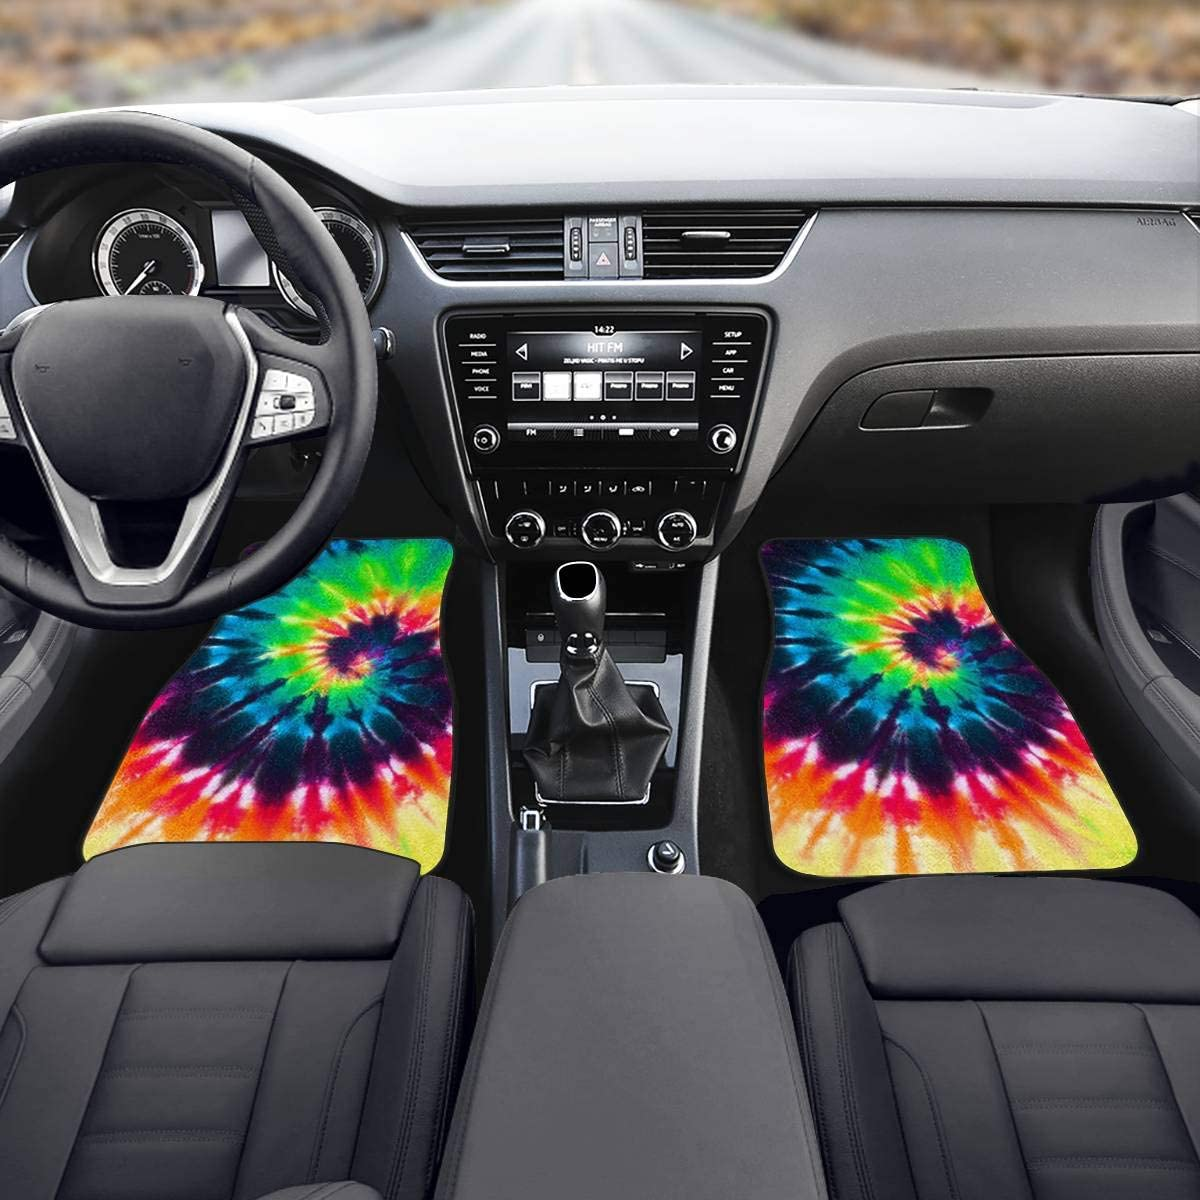 CLOHOMIN Kawaii Flower Sloth Automobile Sedan Floor Foot Mats Rubber Anti-Slip Liners Carpet Dustproof